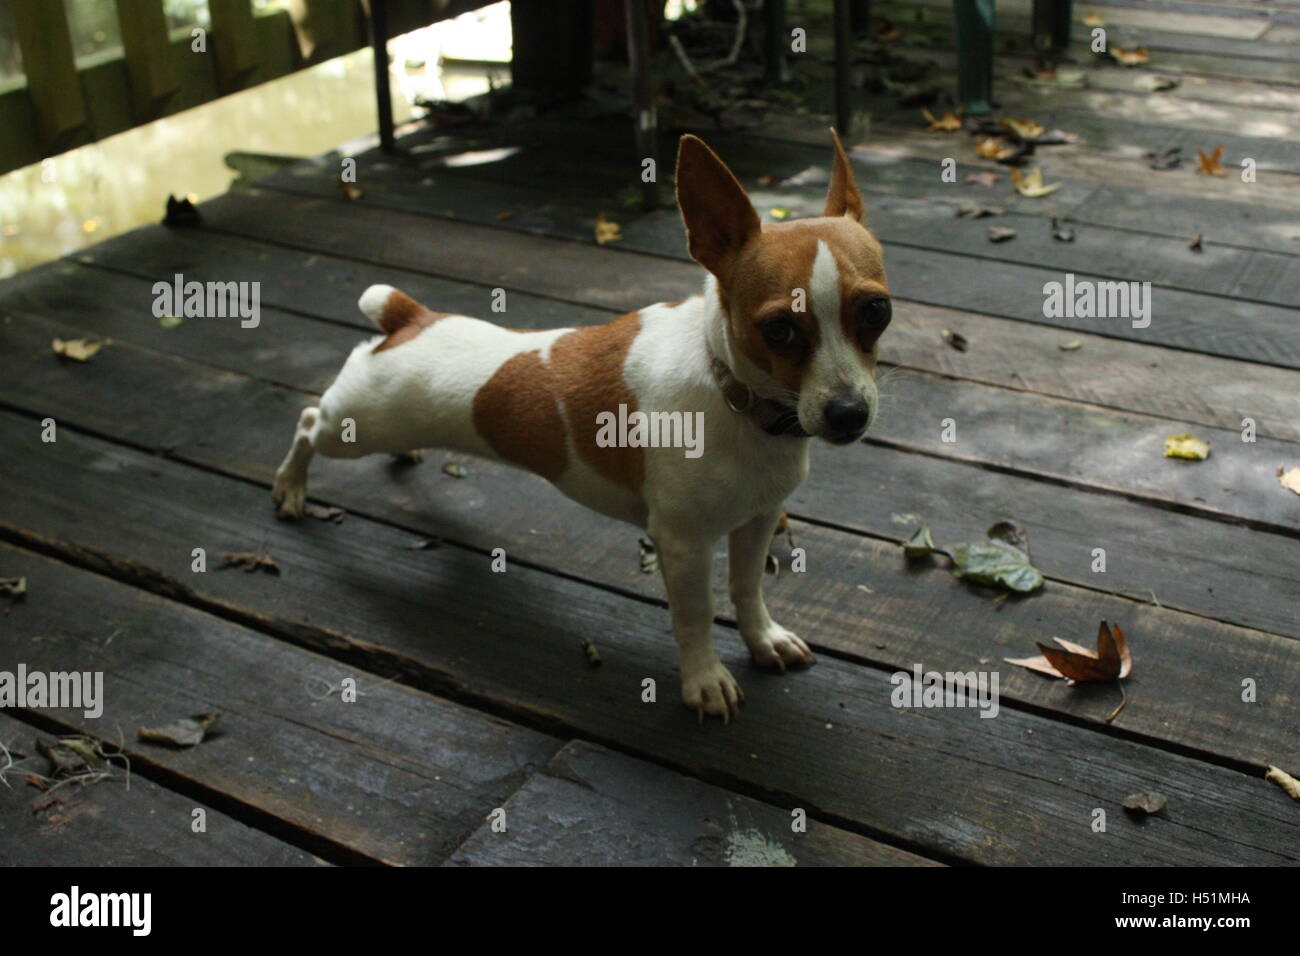 Stretching chihuahua dog on outdoor floorboards Stock Photo